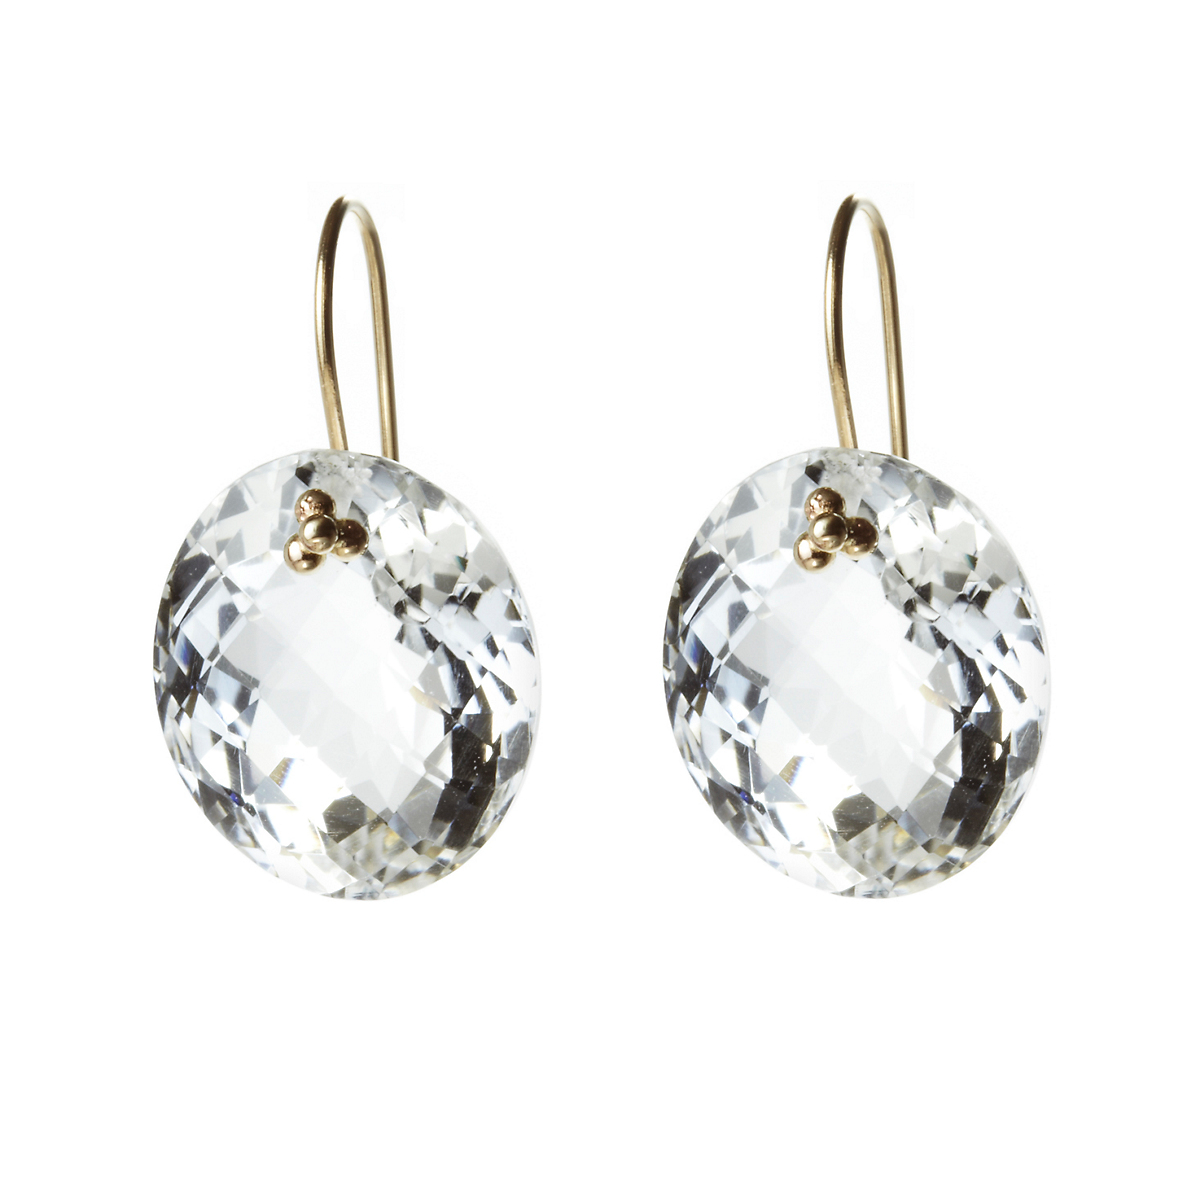 Nikki Baker Crystal Quartz Oval Drop Earrings